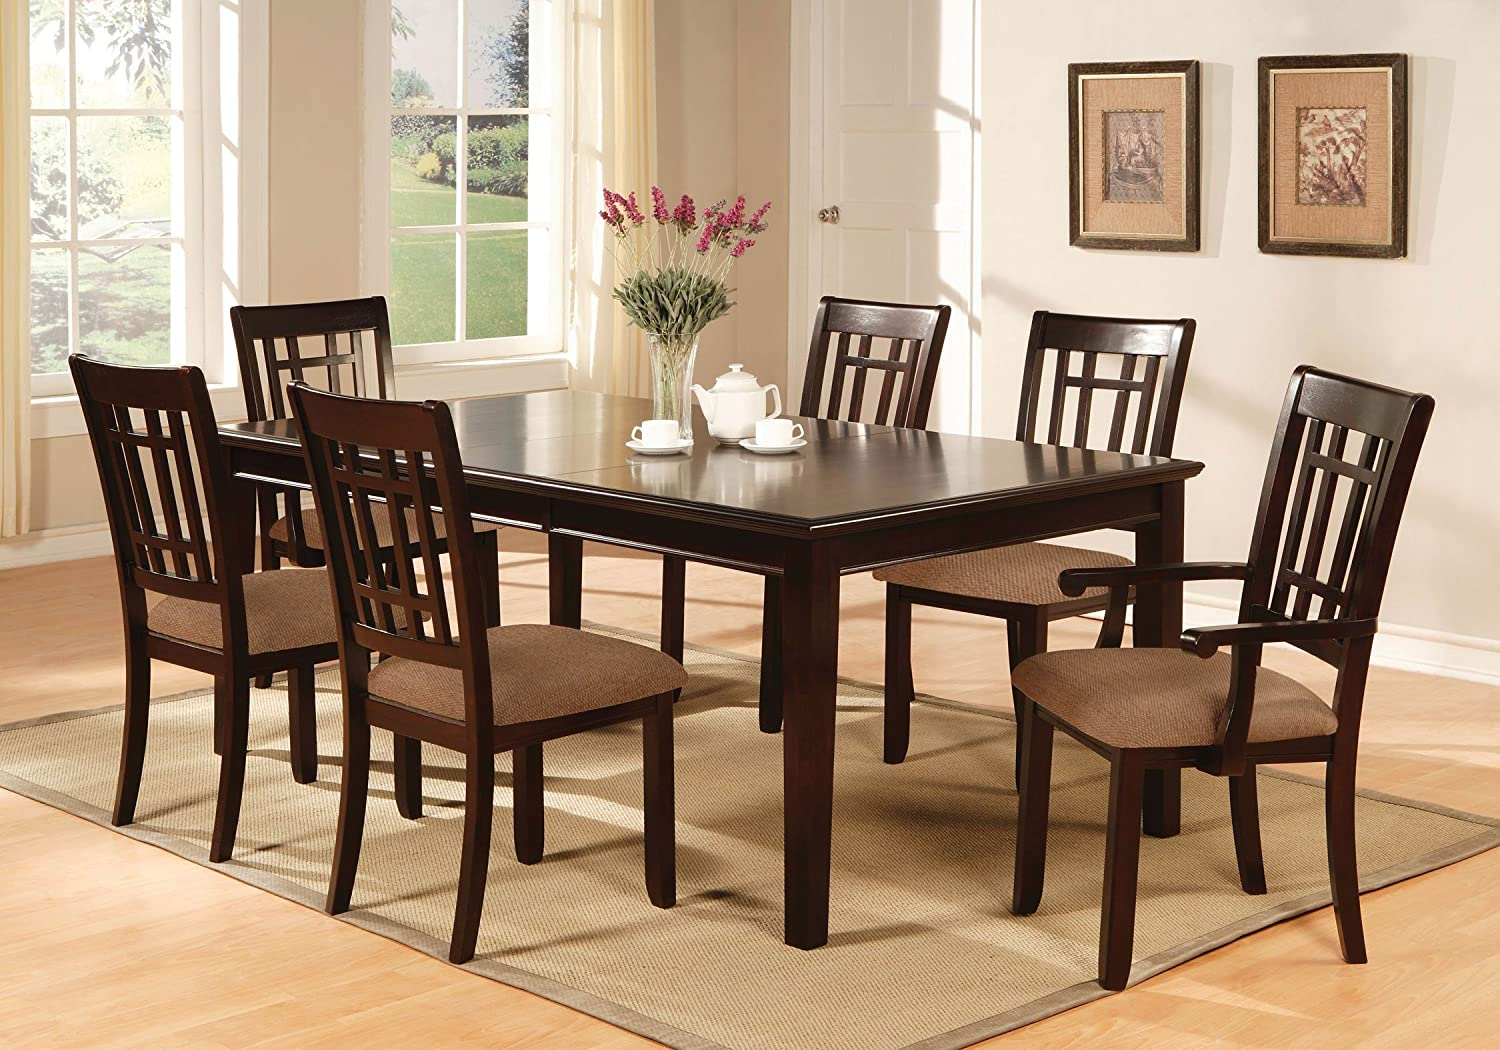 Amazon.com   Furniture Of America Madison 7 Piece Dining Table Set With  18 Inch Leaf, Dark Cherry Finish   Table U0026 Chair Sets